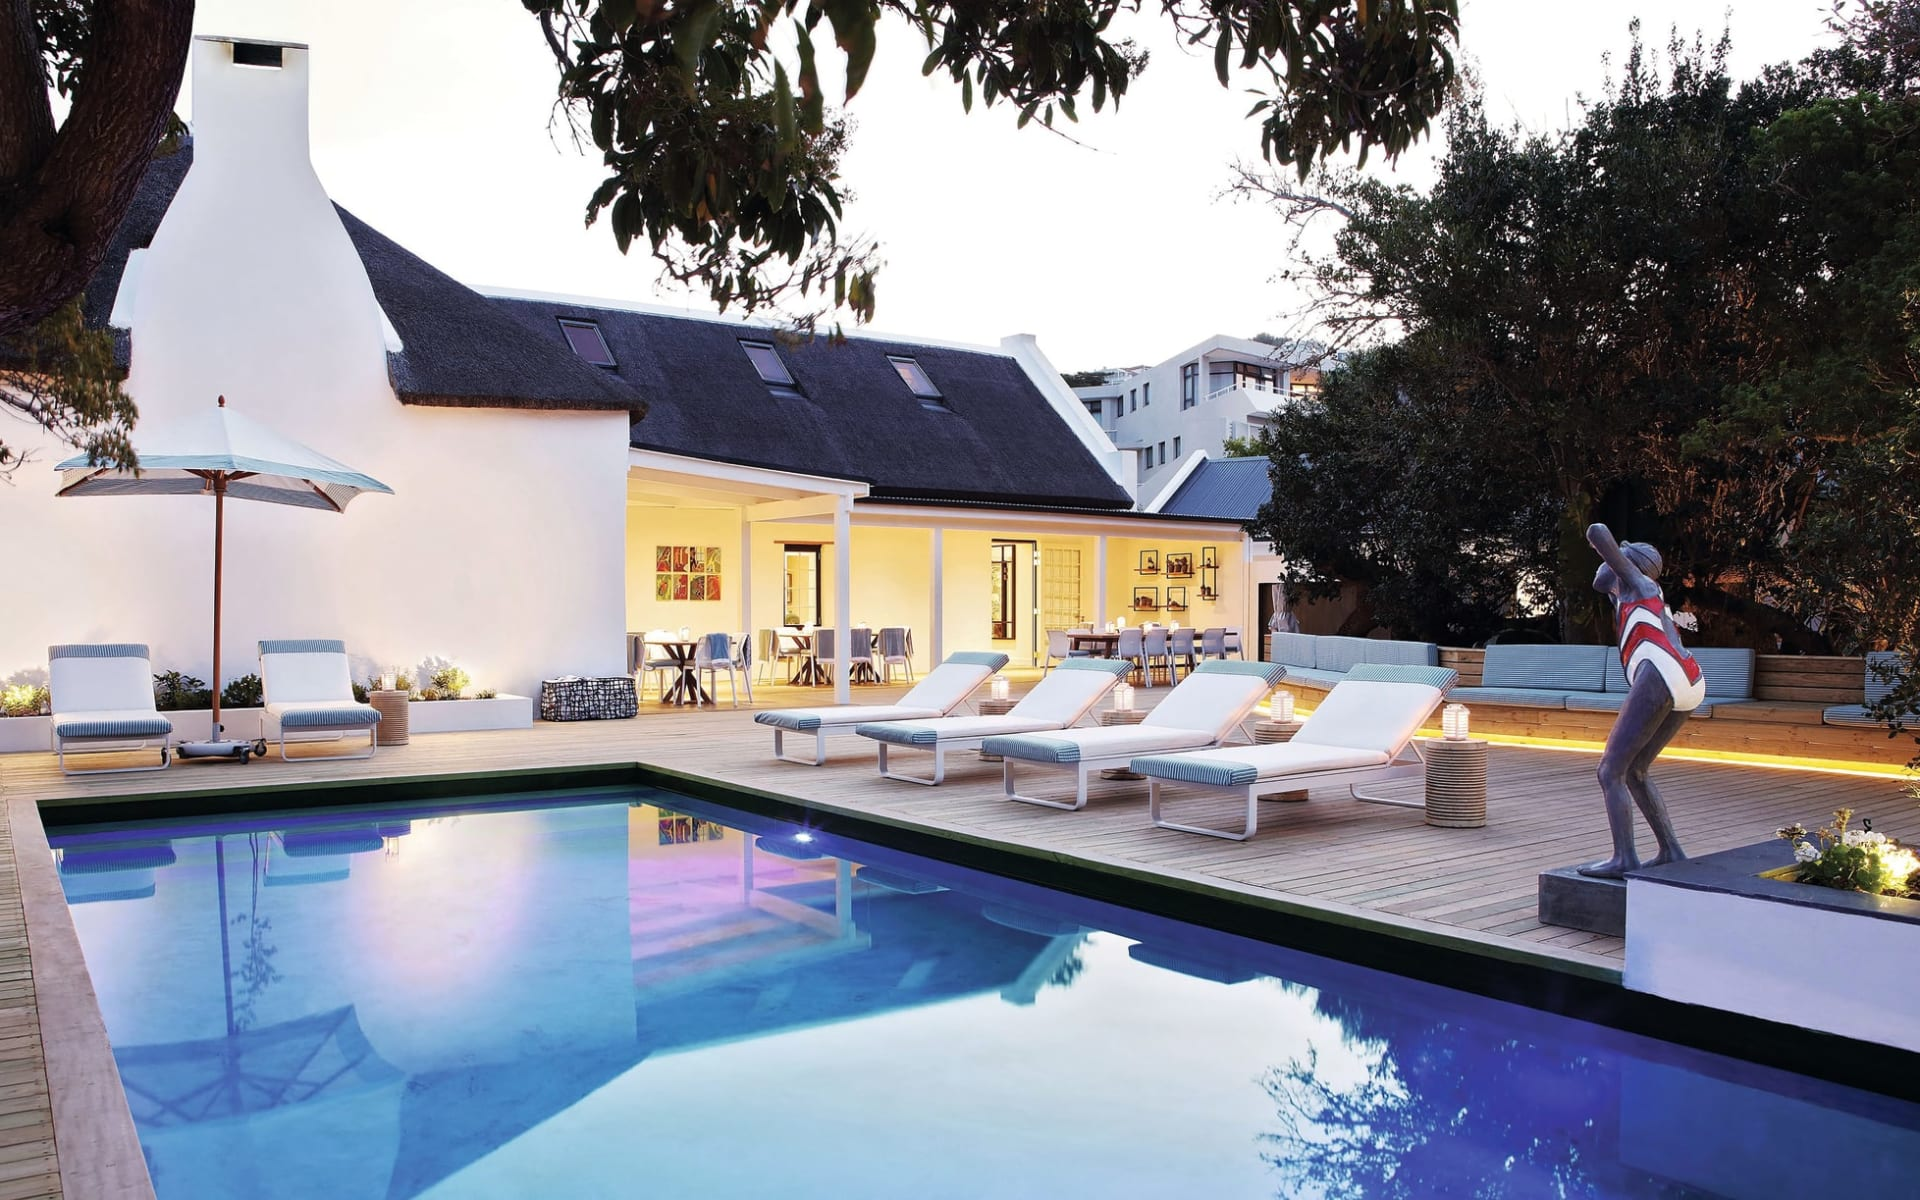 The Old Rectory in Plettenberg Bay: The Old Rectory - Swimmingpool mit Liegestühlen